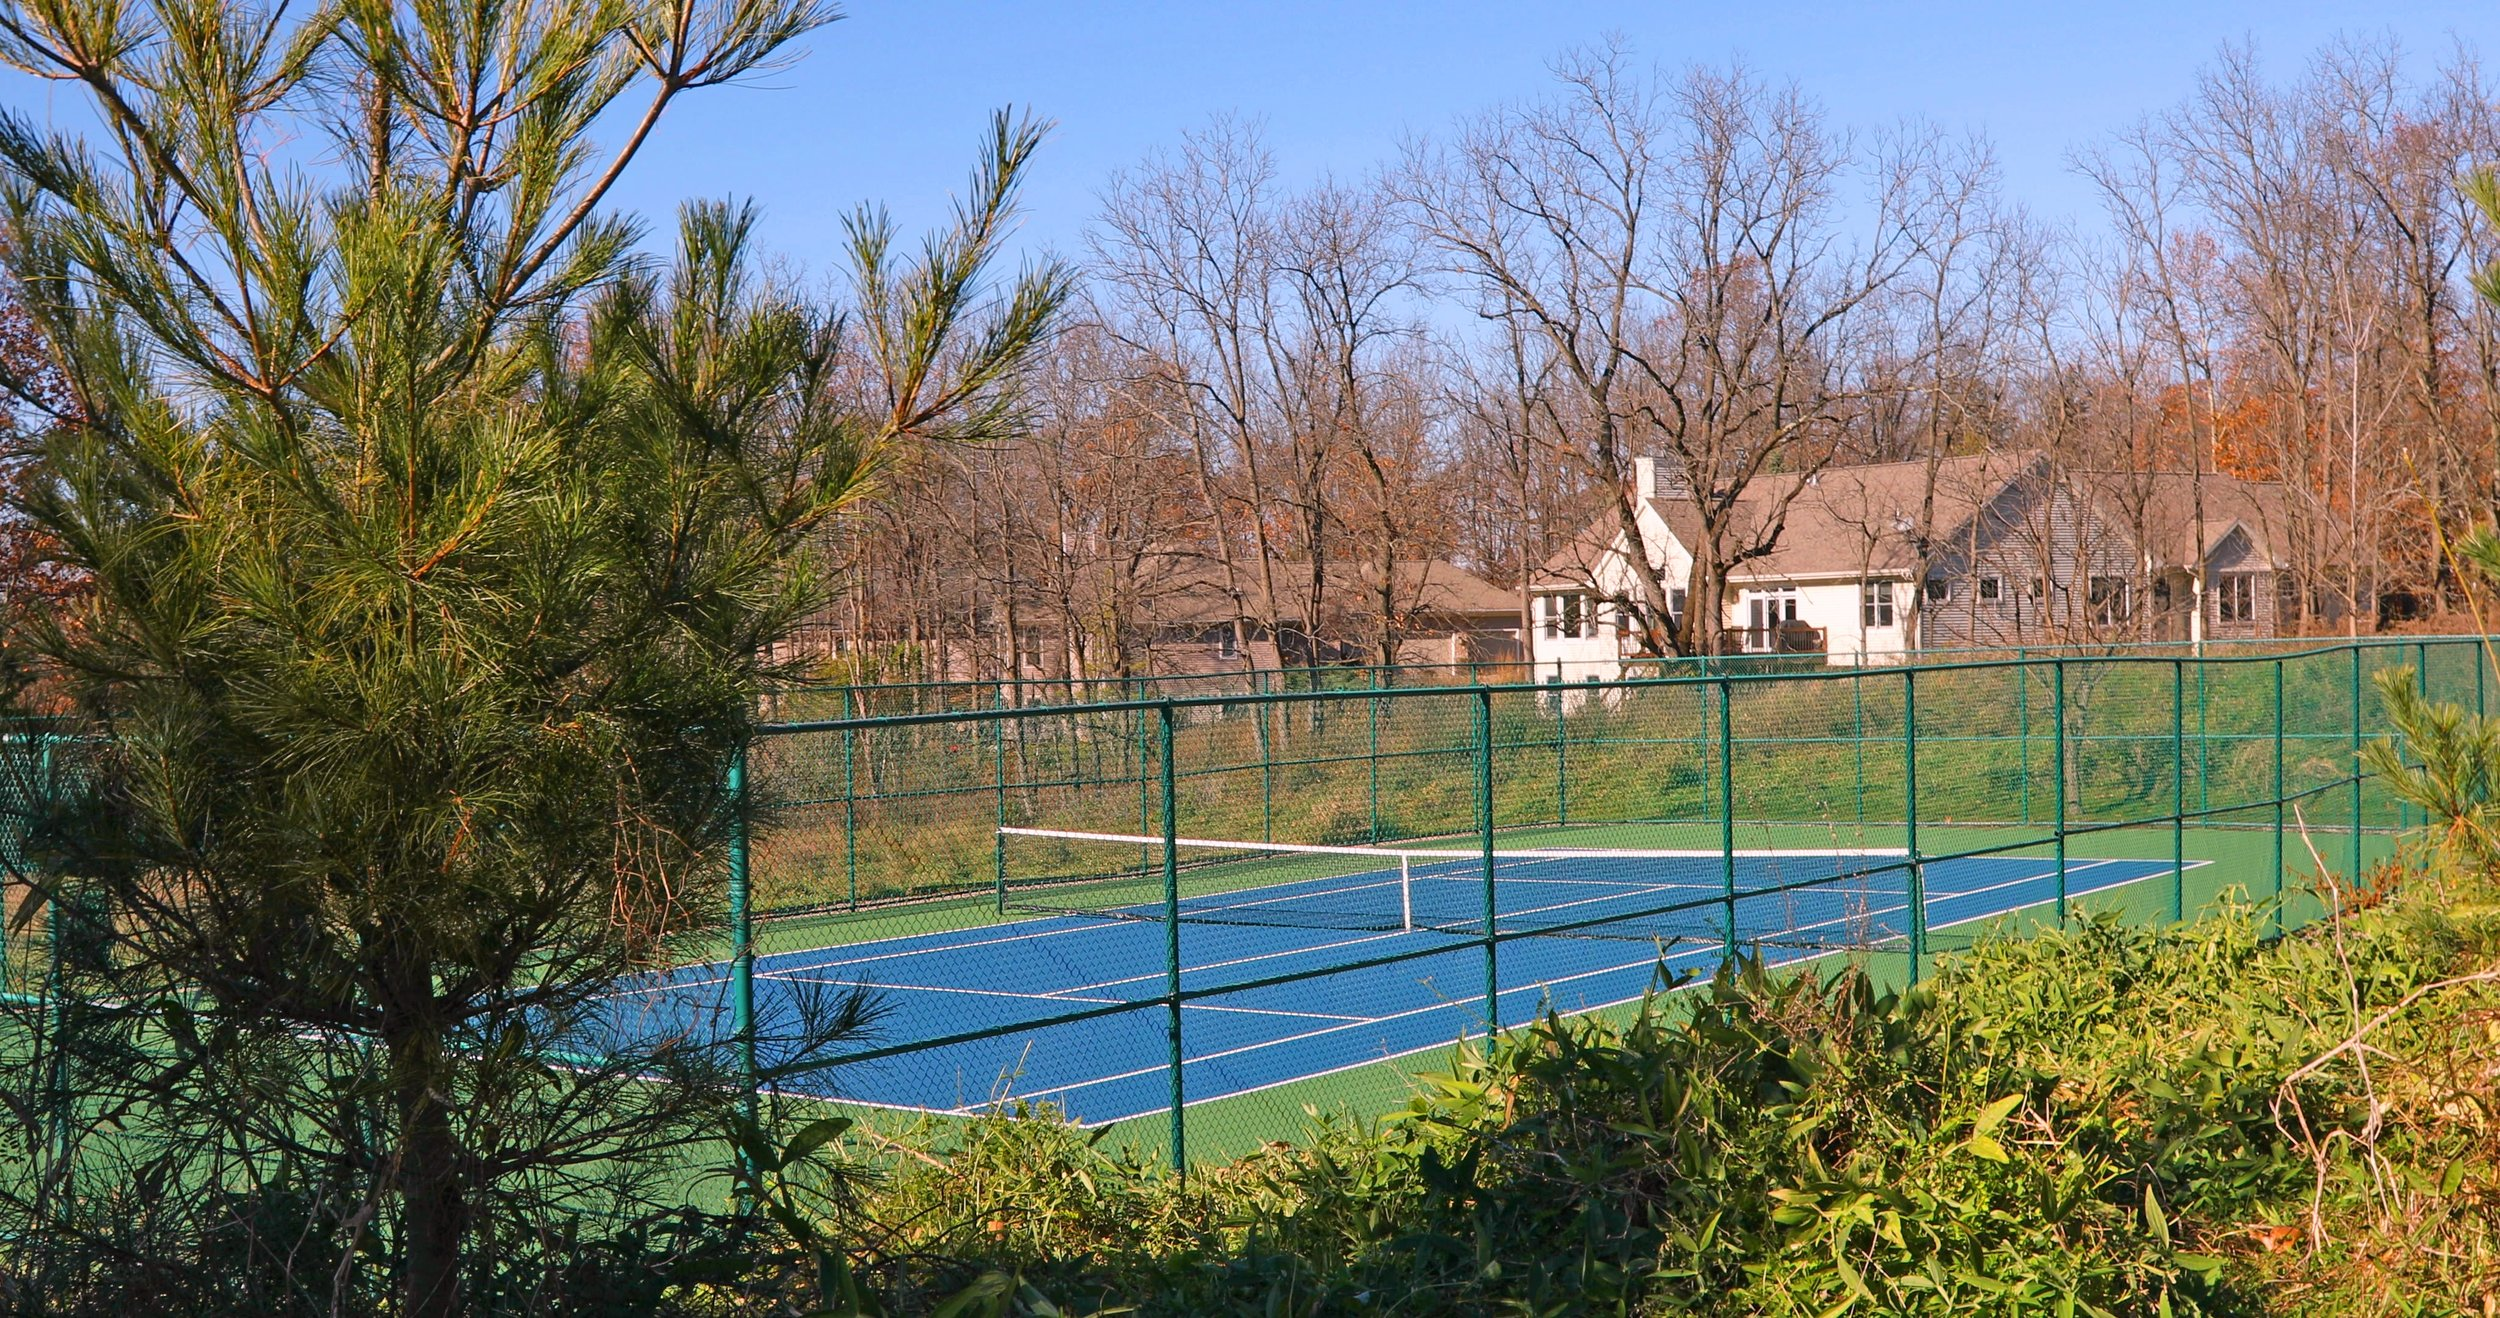 02+13+2017_HL_Community+photos_Tennis+court[1].jpg